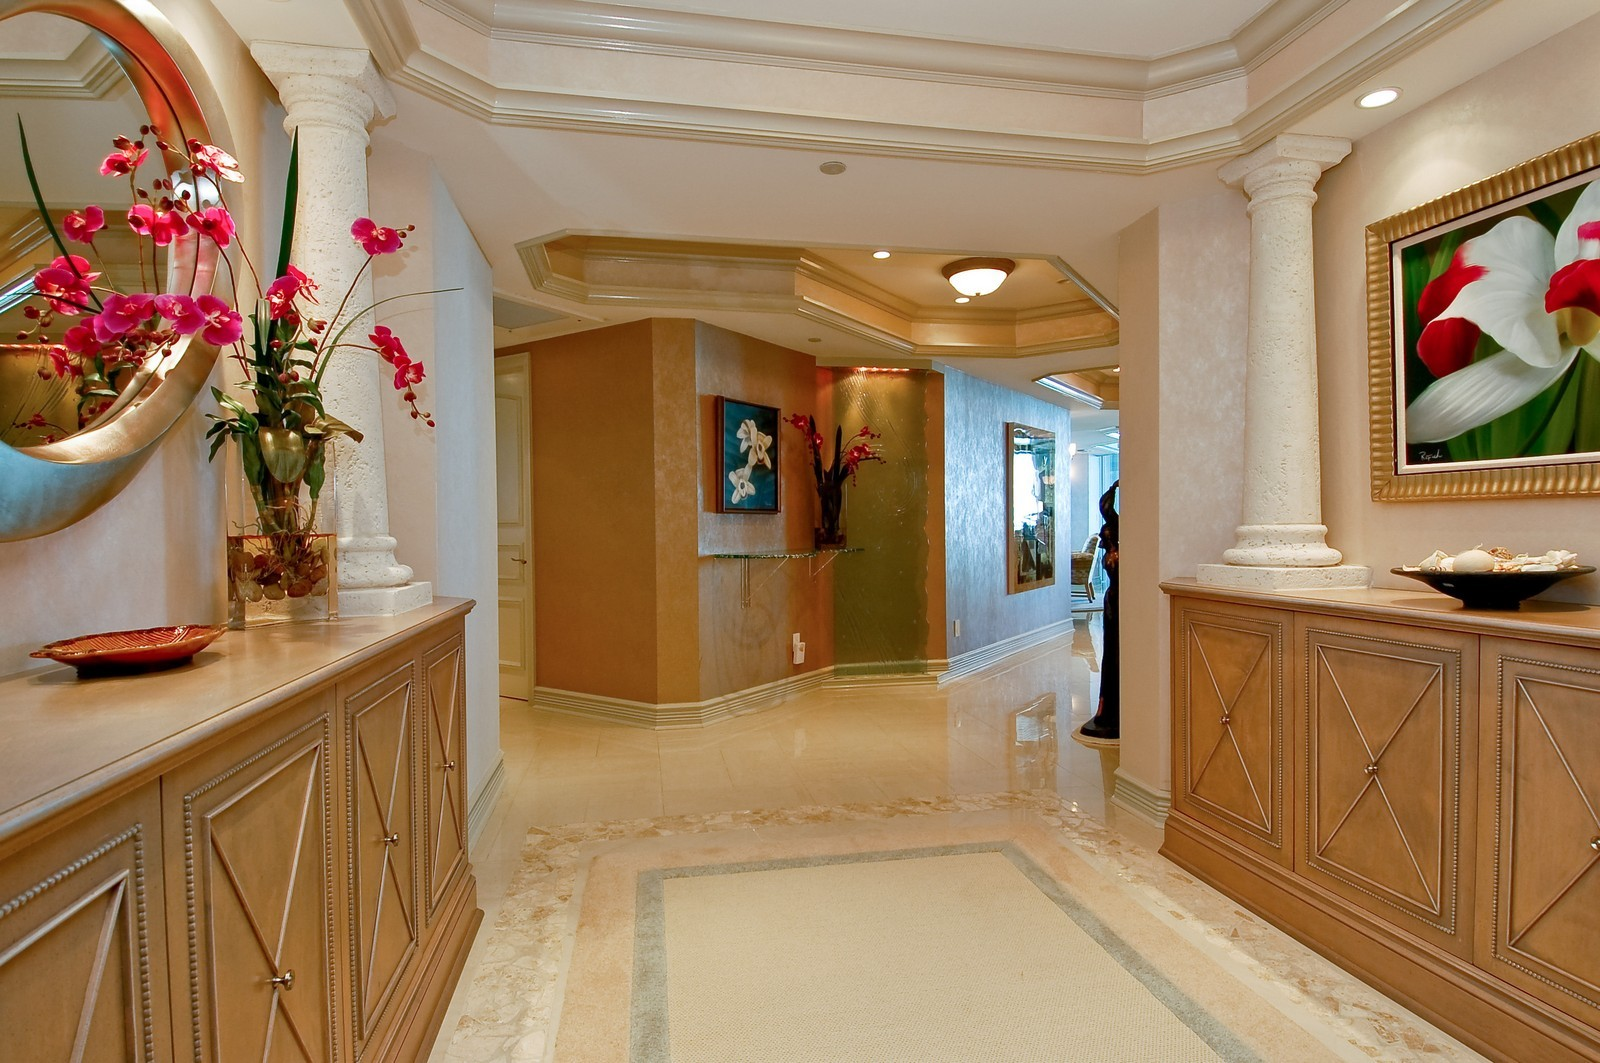 Real Estate Photography - 1700 S Ocean Blvd, 22C, Lauderdale by the Sea, FL, 33062 - Entryway